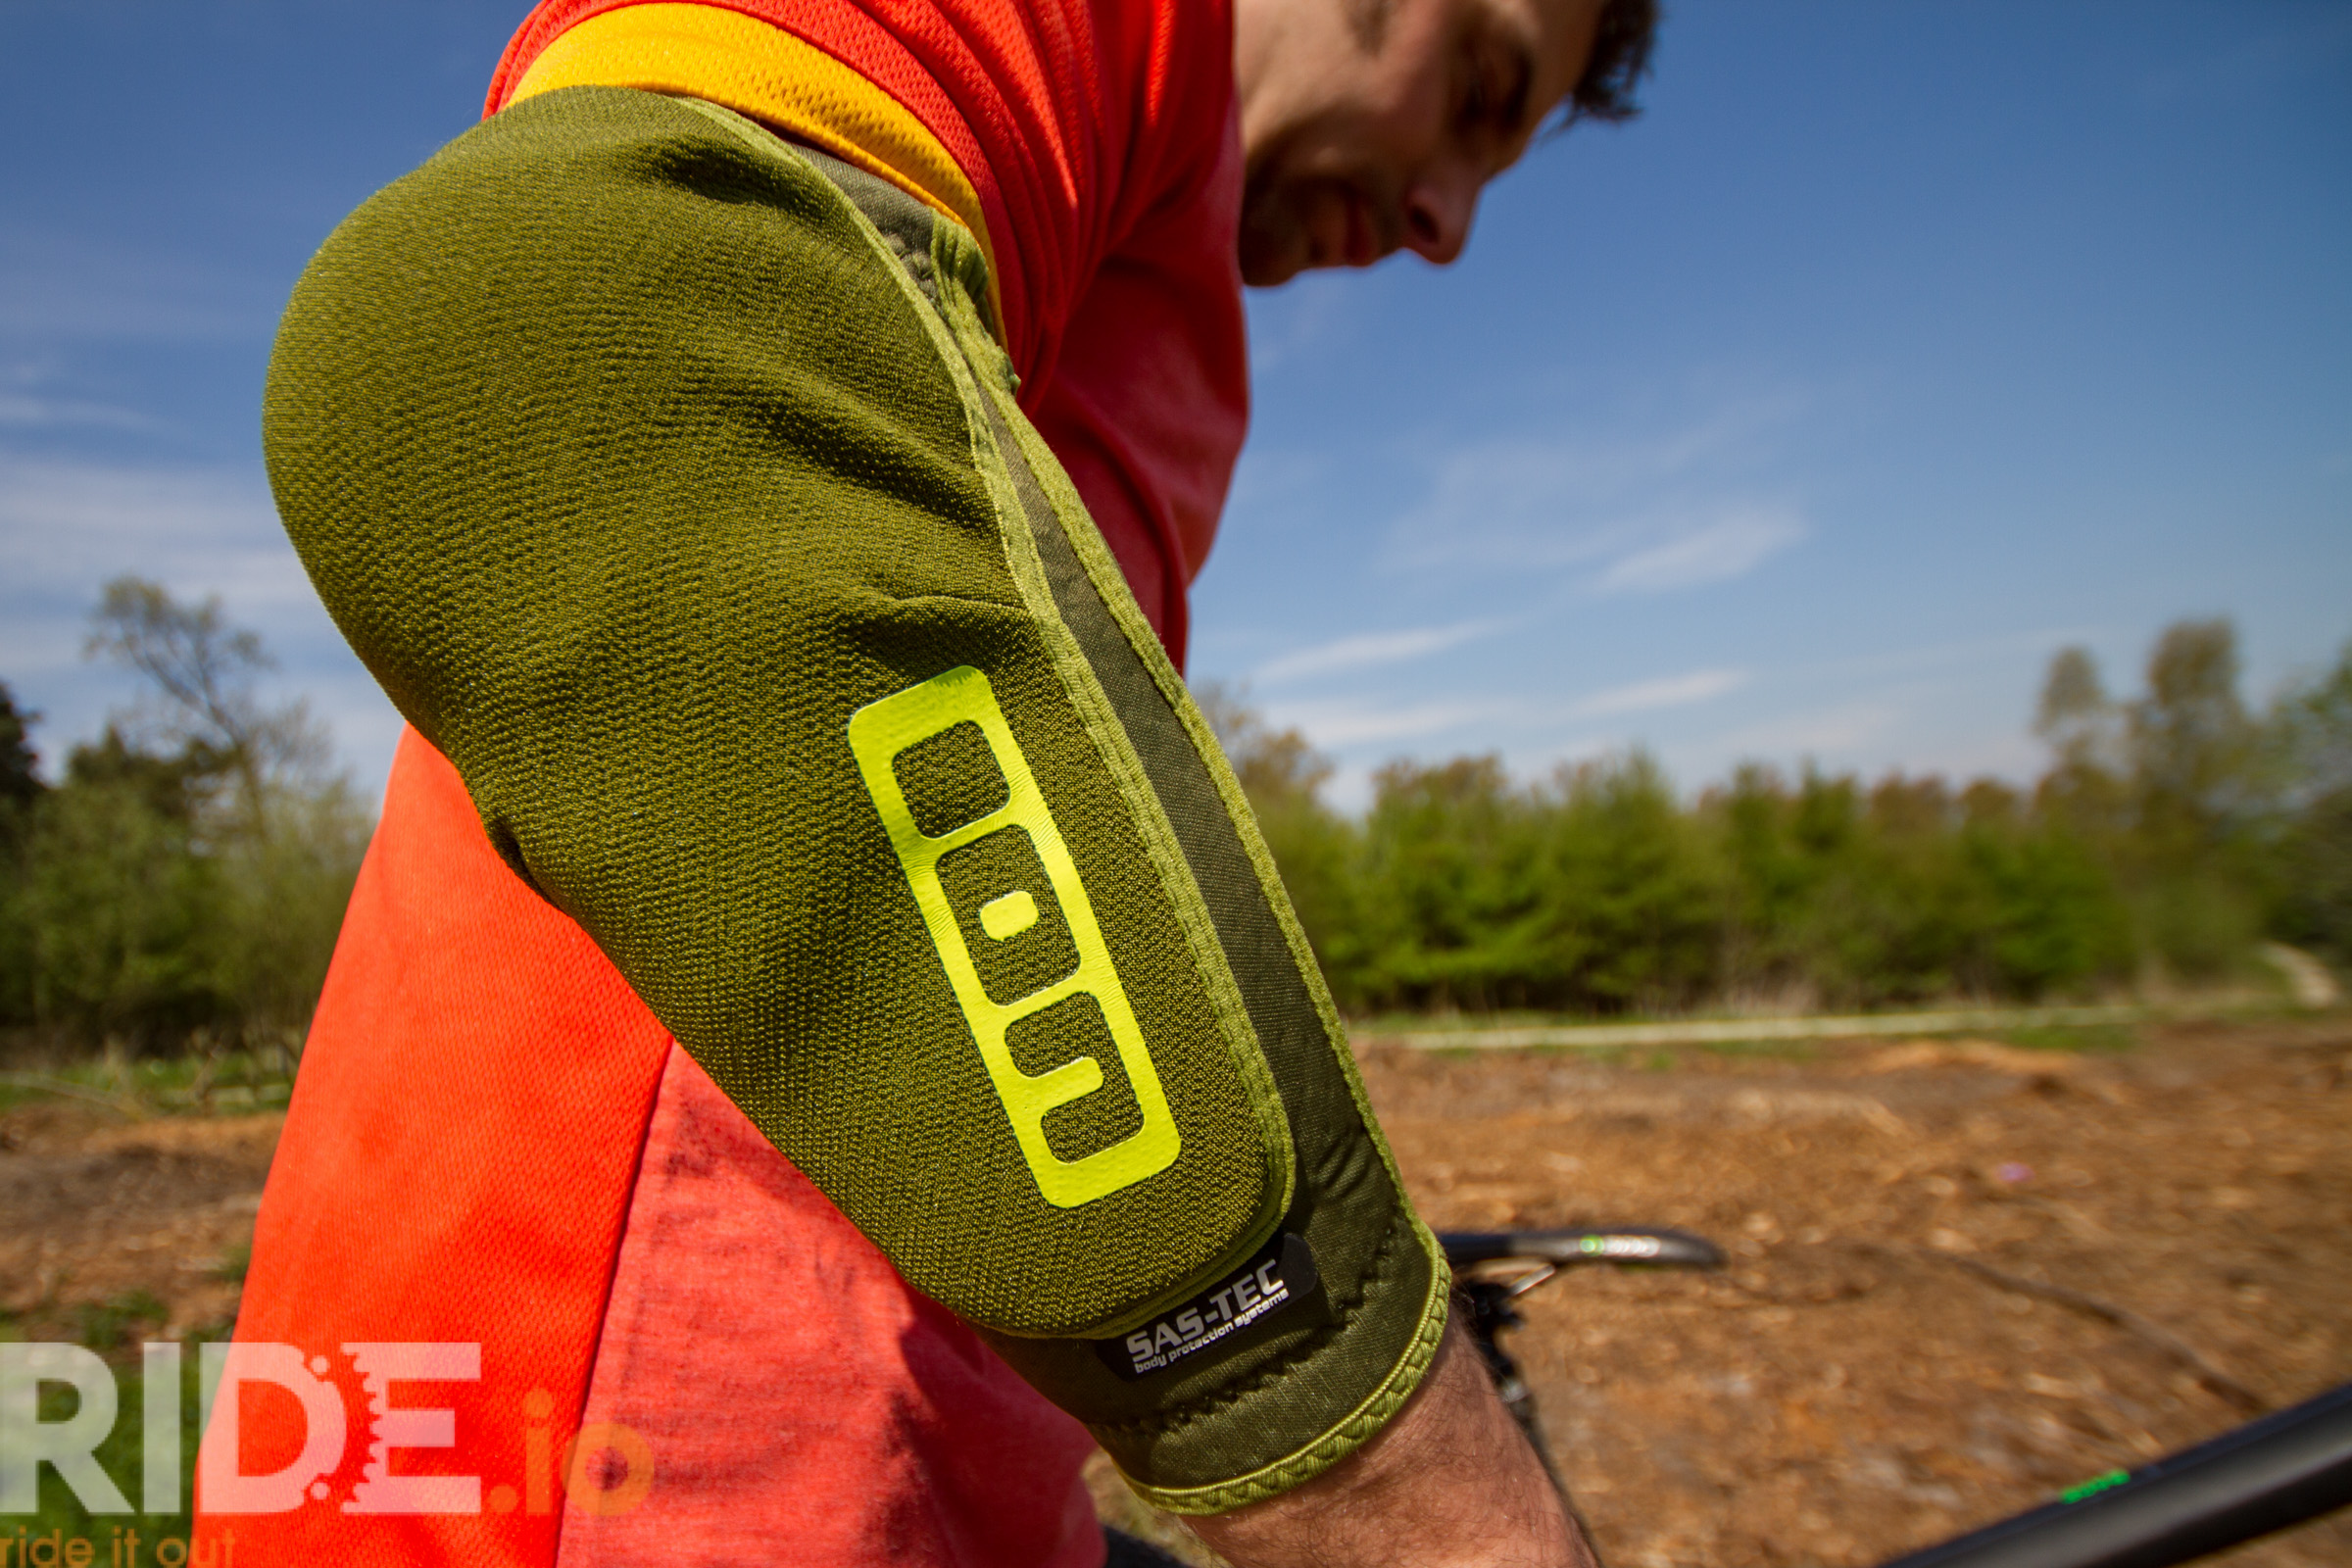 ION K-Lite/E-Lite Pads & GAT Gloves - Full Review - Ride It Out